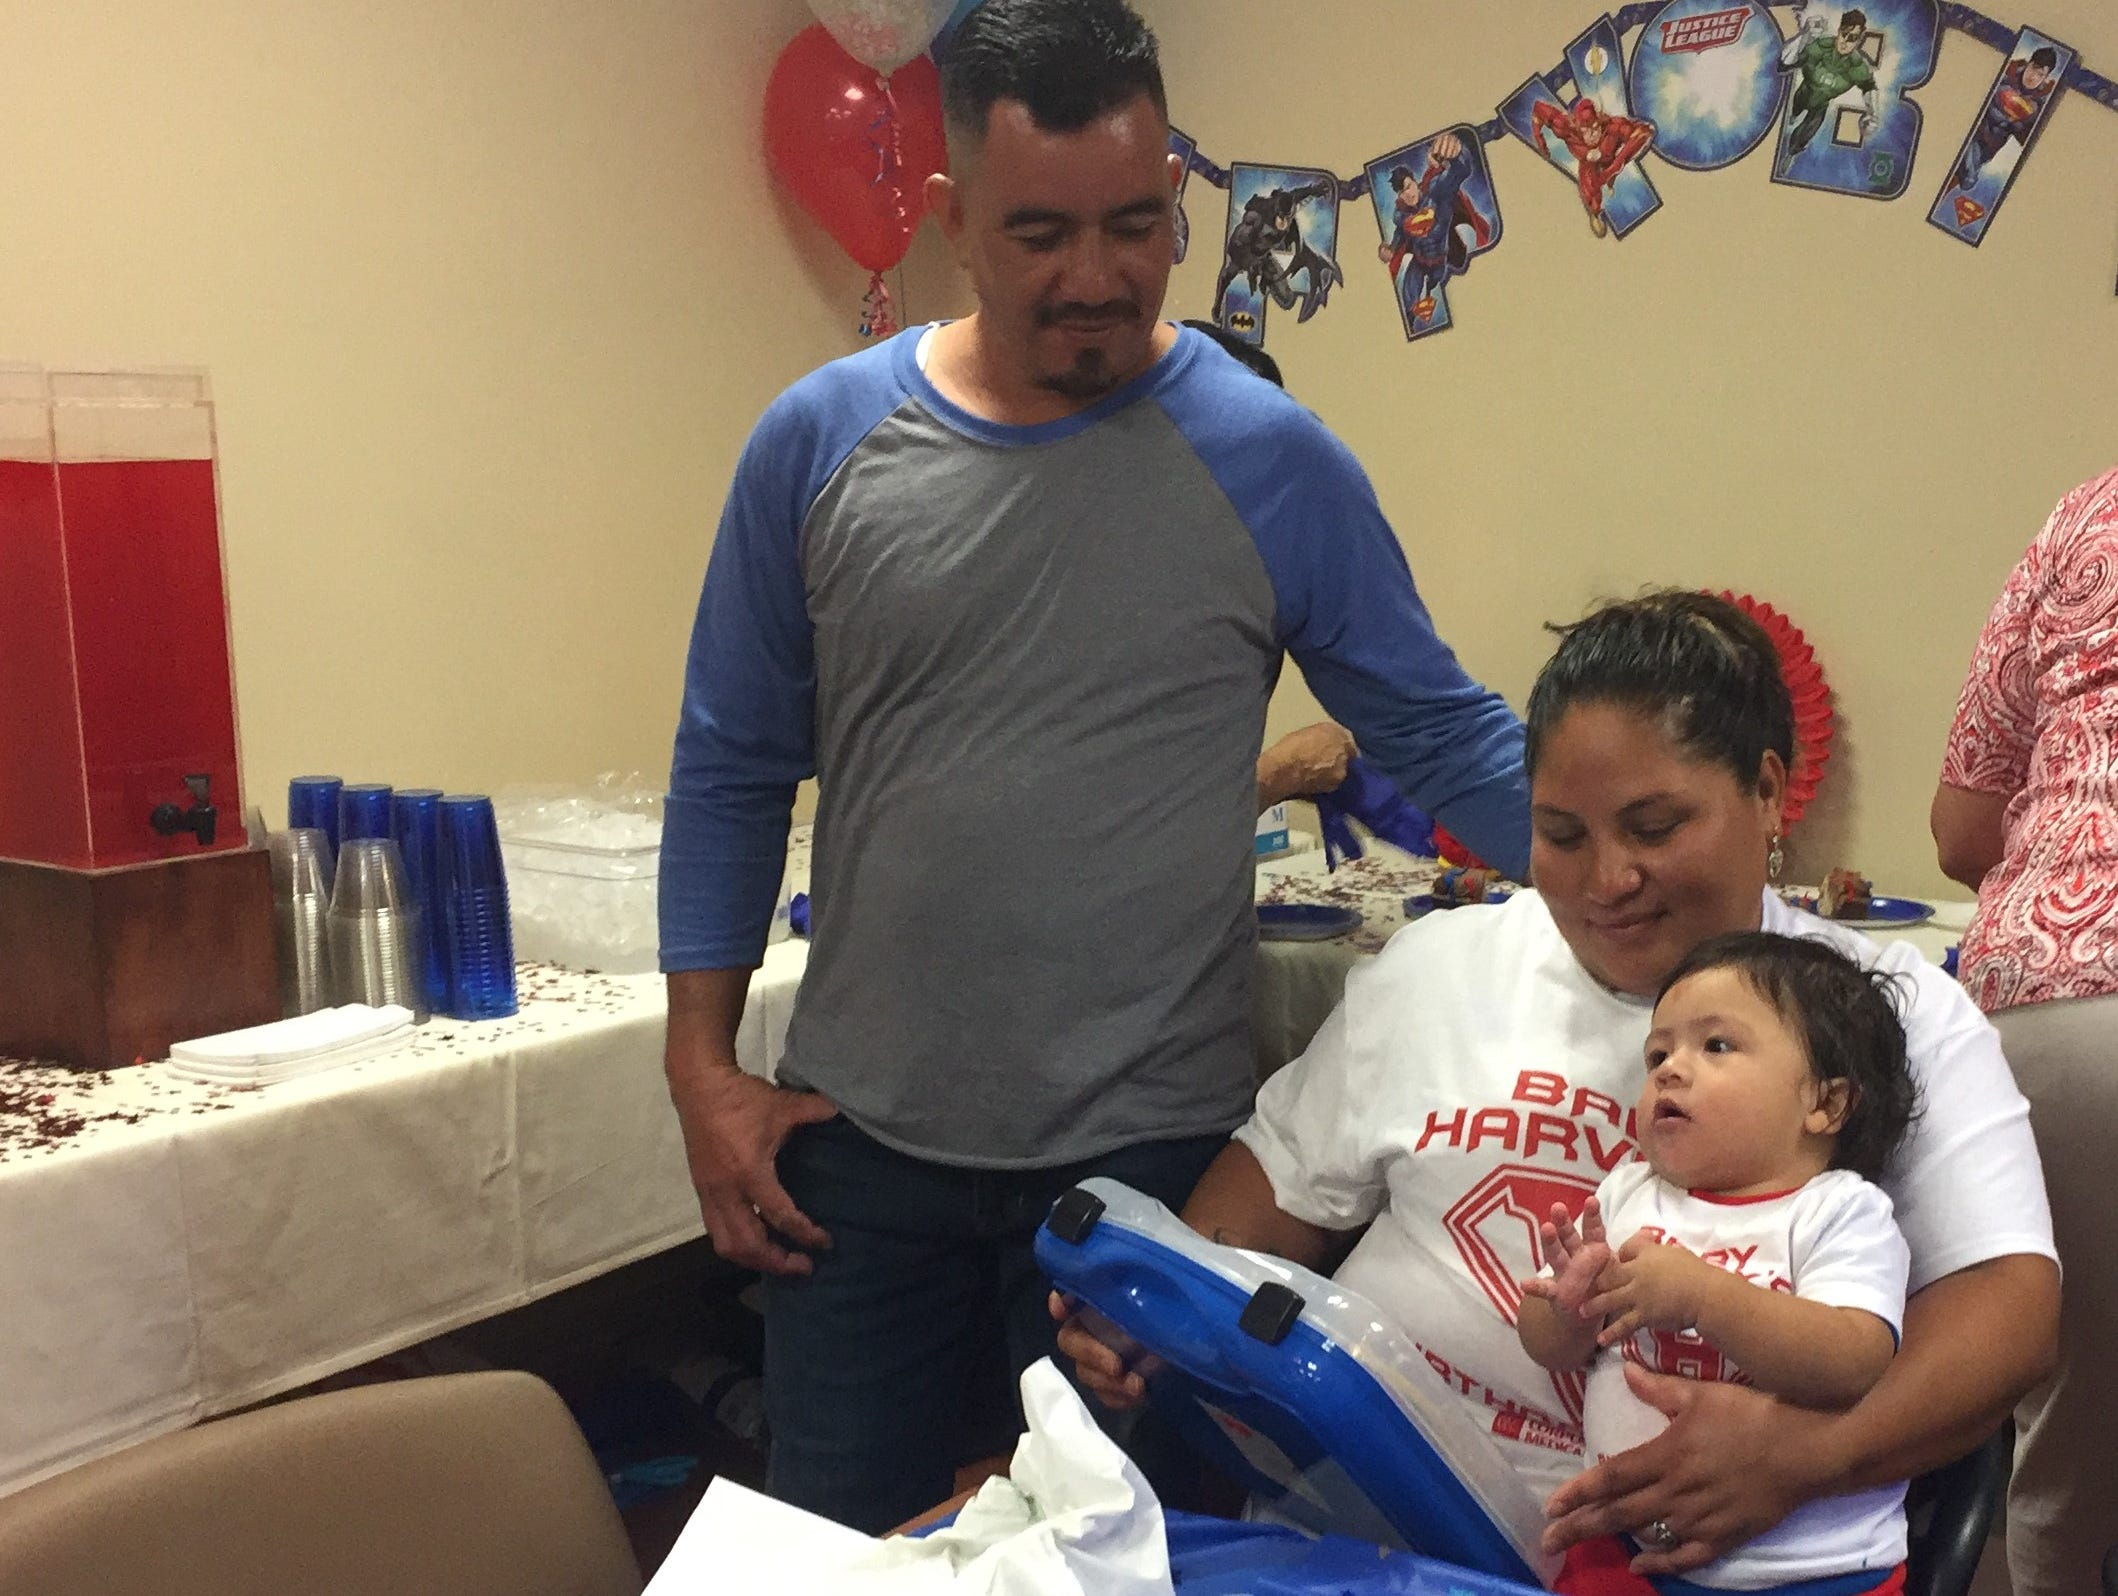 One-year-old Harvey Cantarero, with his parents, Irma Rodriguez and Marcos Antonio Cantarero.